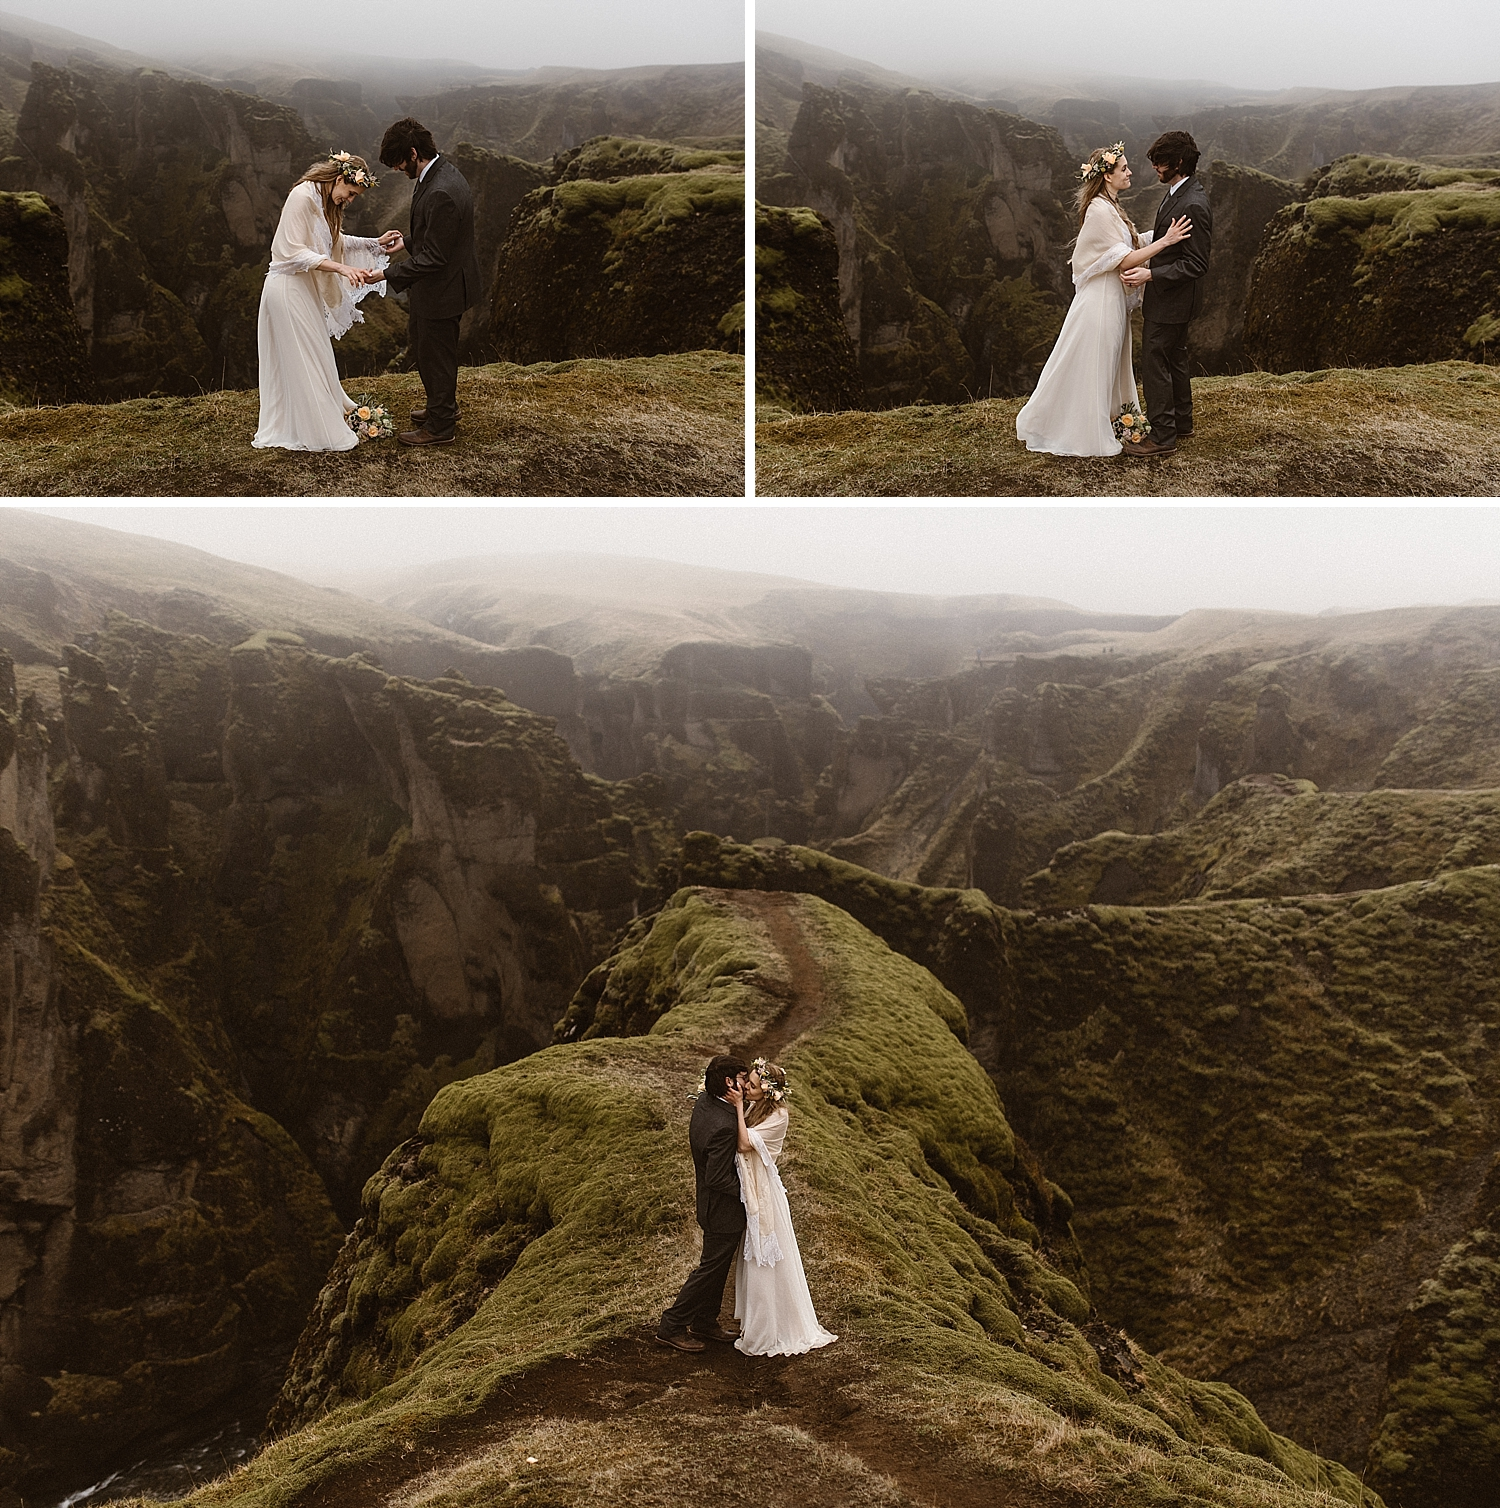 Taking on last look as his stunning bride, Julie and Tim's excitement could be felt for miles! They had just said their most intimate vows in the most stunning Icelandic backdrop with only their intimate elopement photographer, Maddie Mae, as their witness.